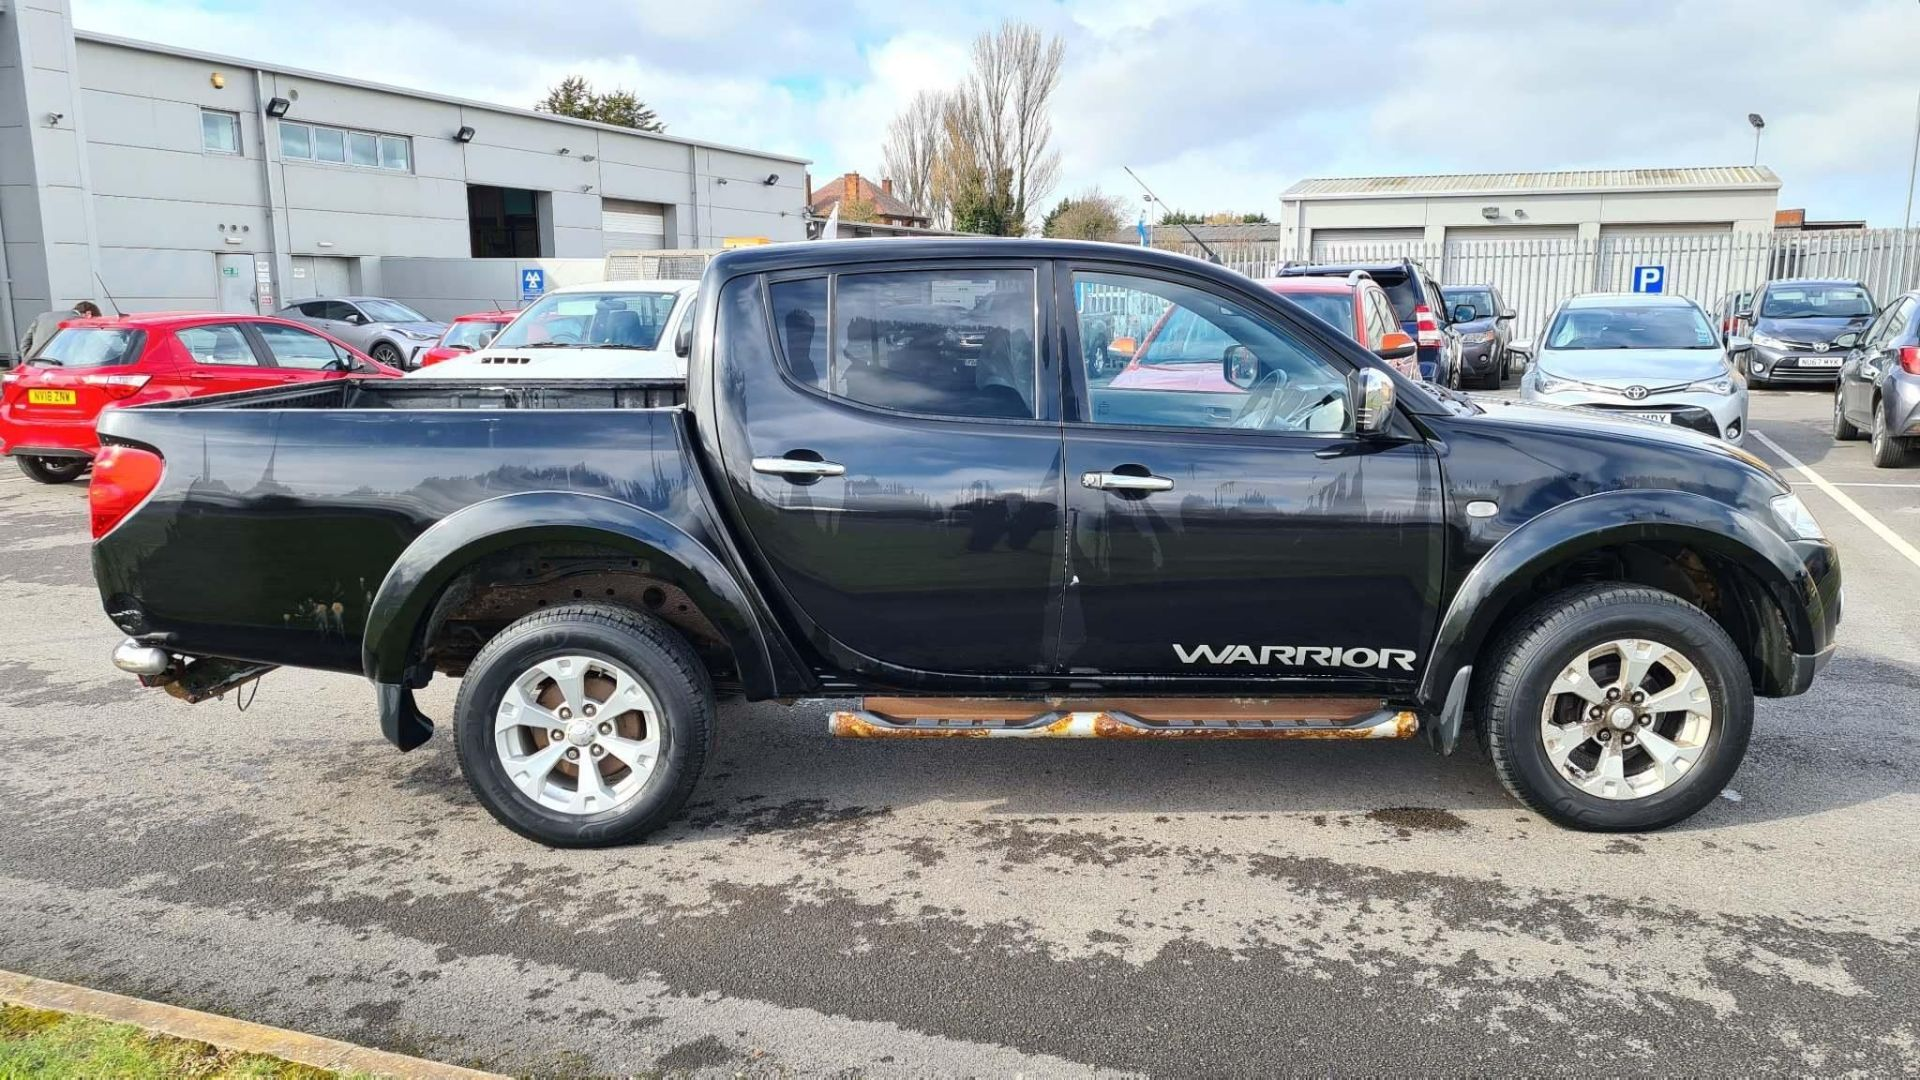 2012 Mitsubishi L200 2.5 DI-D CR Warrior LB Double Cab Pickup 4dr Diesel Manual 4WD (EU5, Leather) - - Image 2 of 15